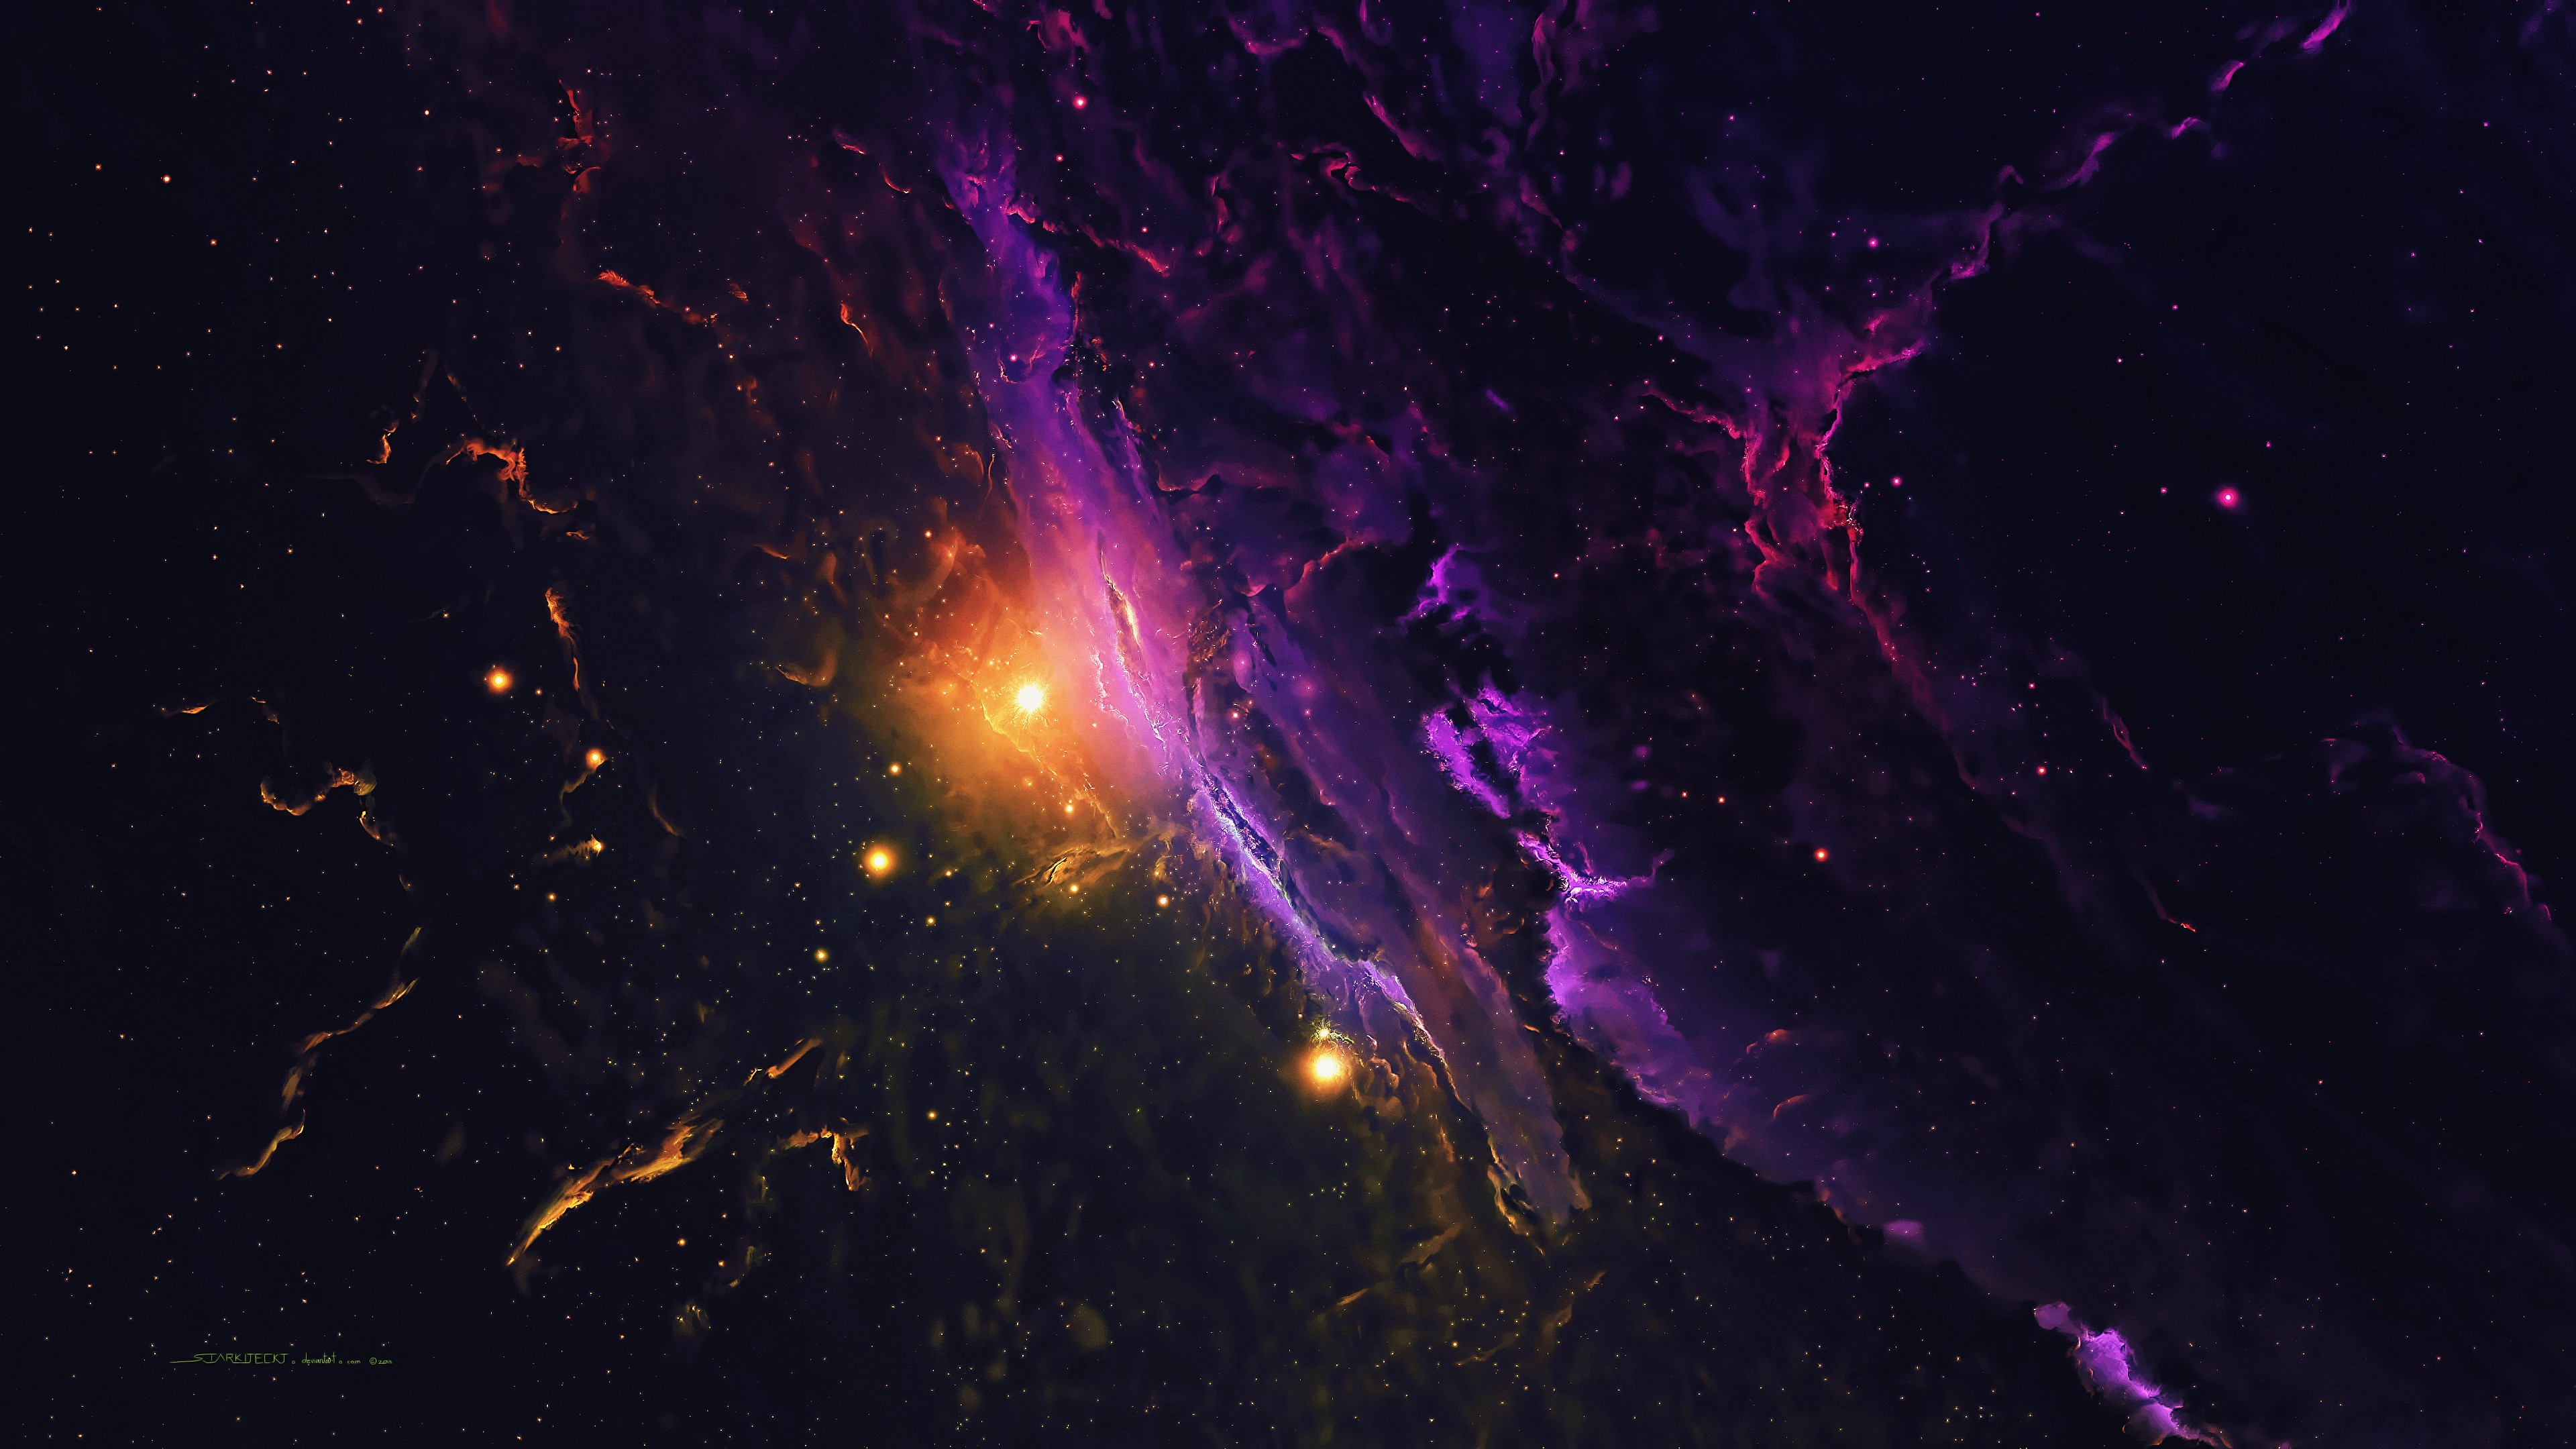 Galaxy In Space Wallpaper 4k Ultra Hd Id4052